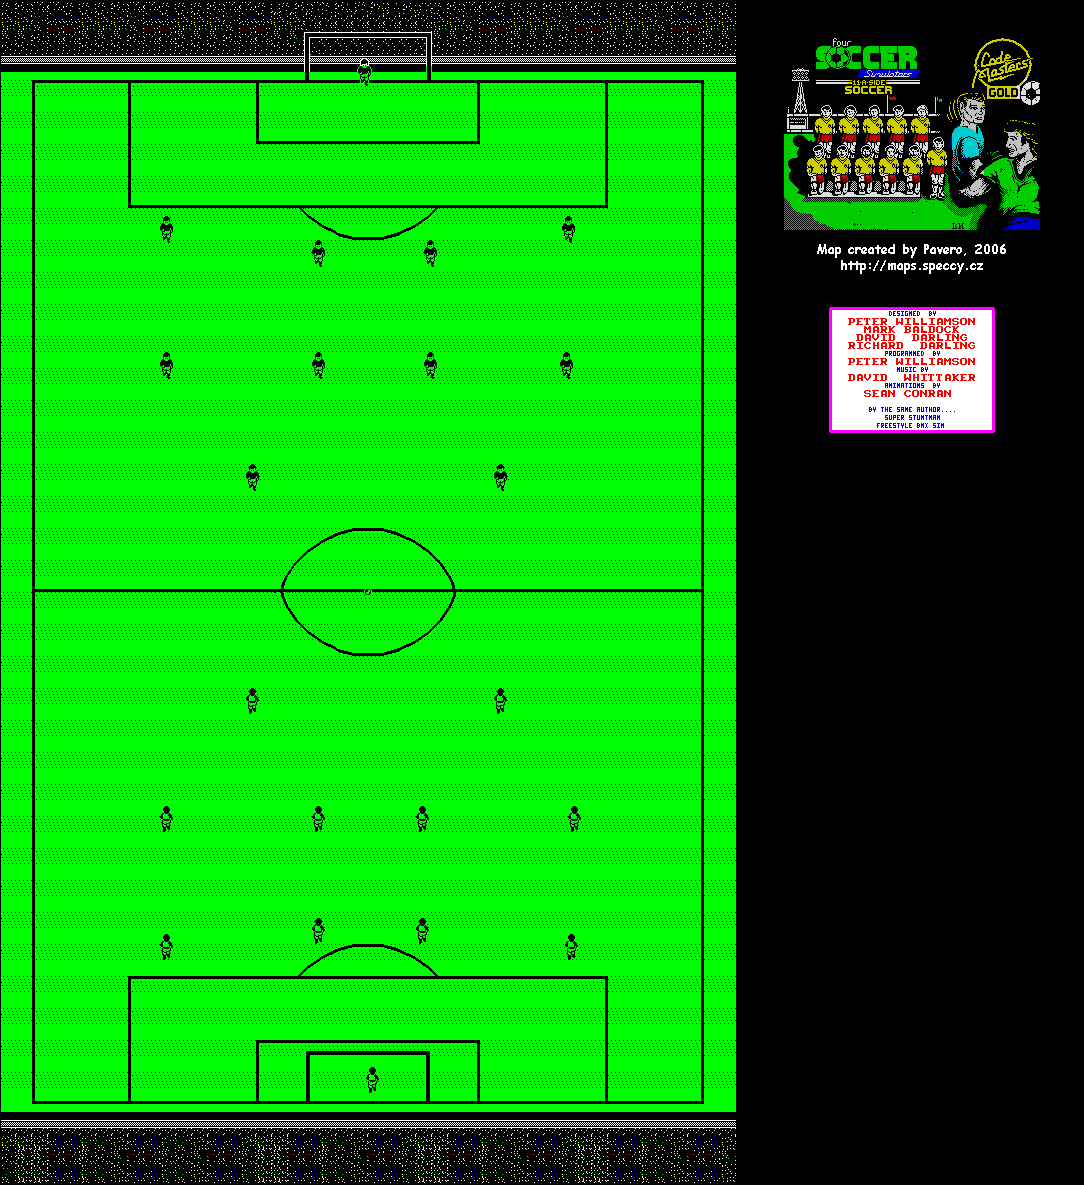 Four Soccer Simulators - 11 A Side Soccer - The Map